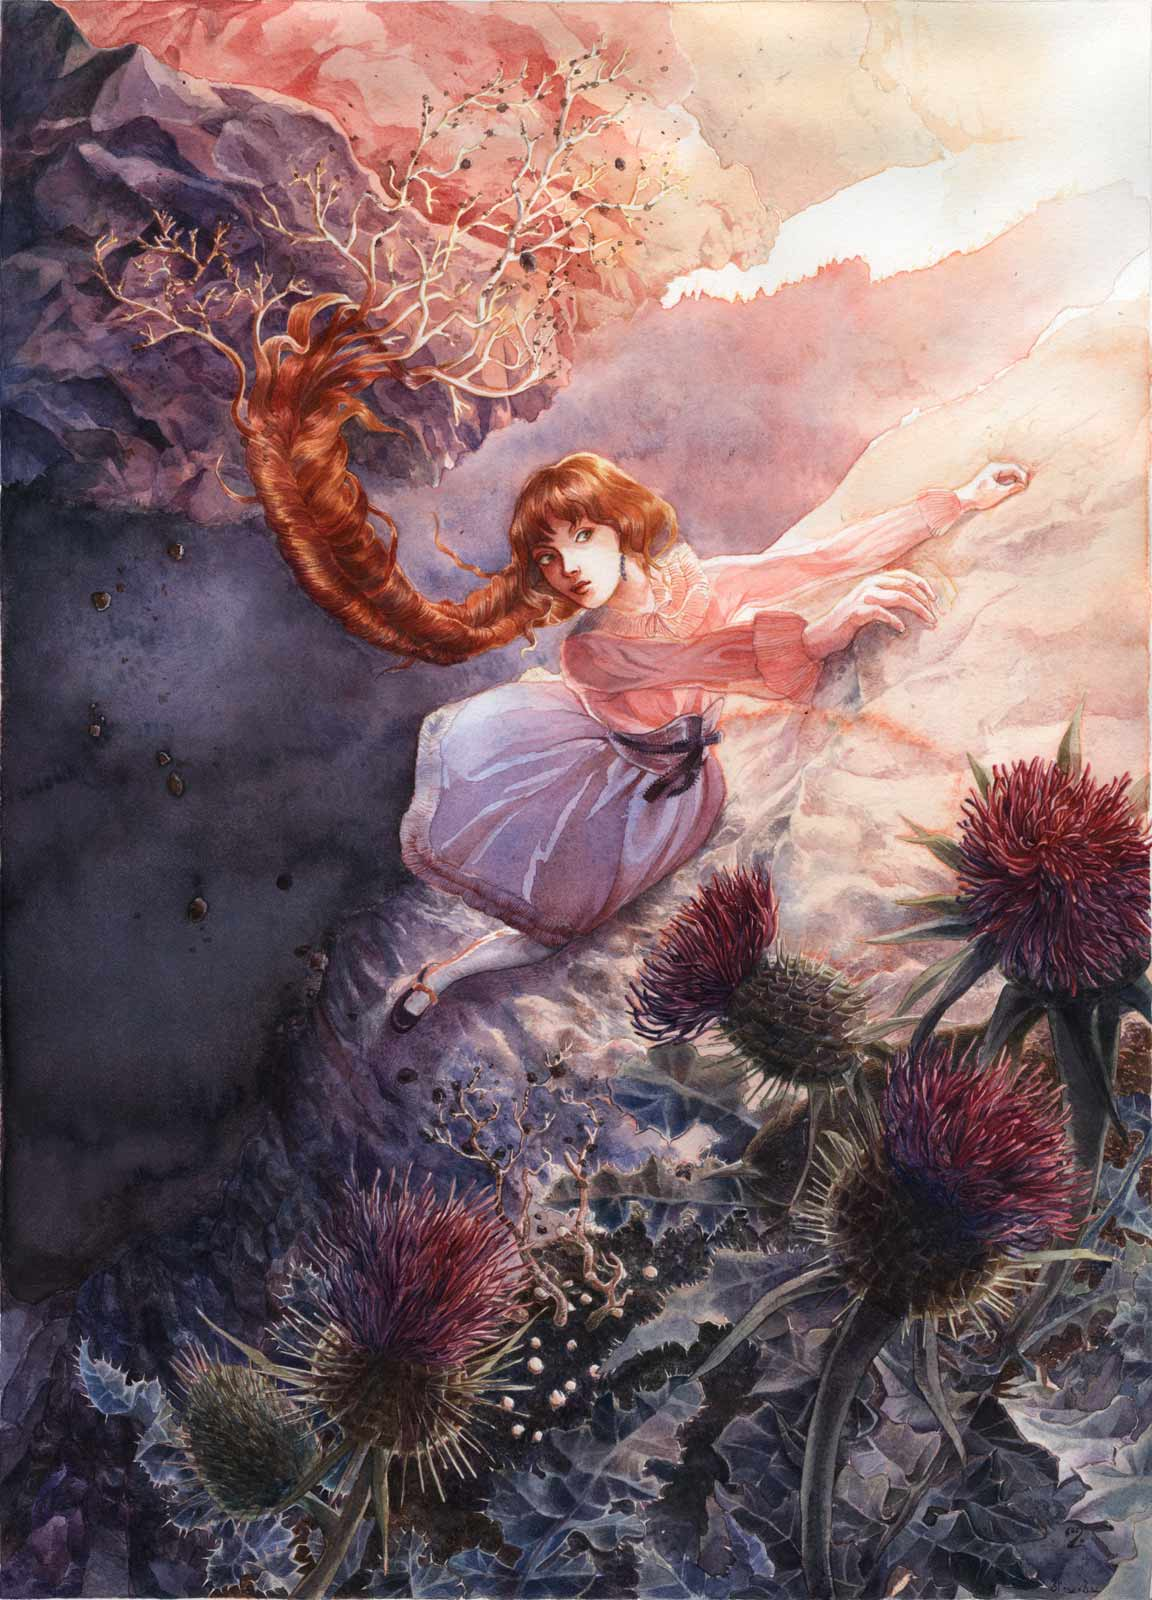 A woman — a mandragora — in lolita fashion clothing descending a cliff in Scotland, her long braid of auburn hair pulling out of a bed of thistles, at the golden hour